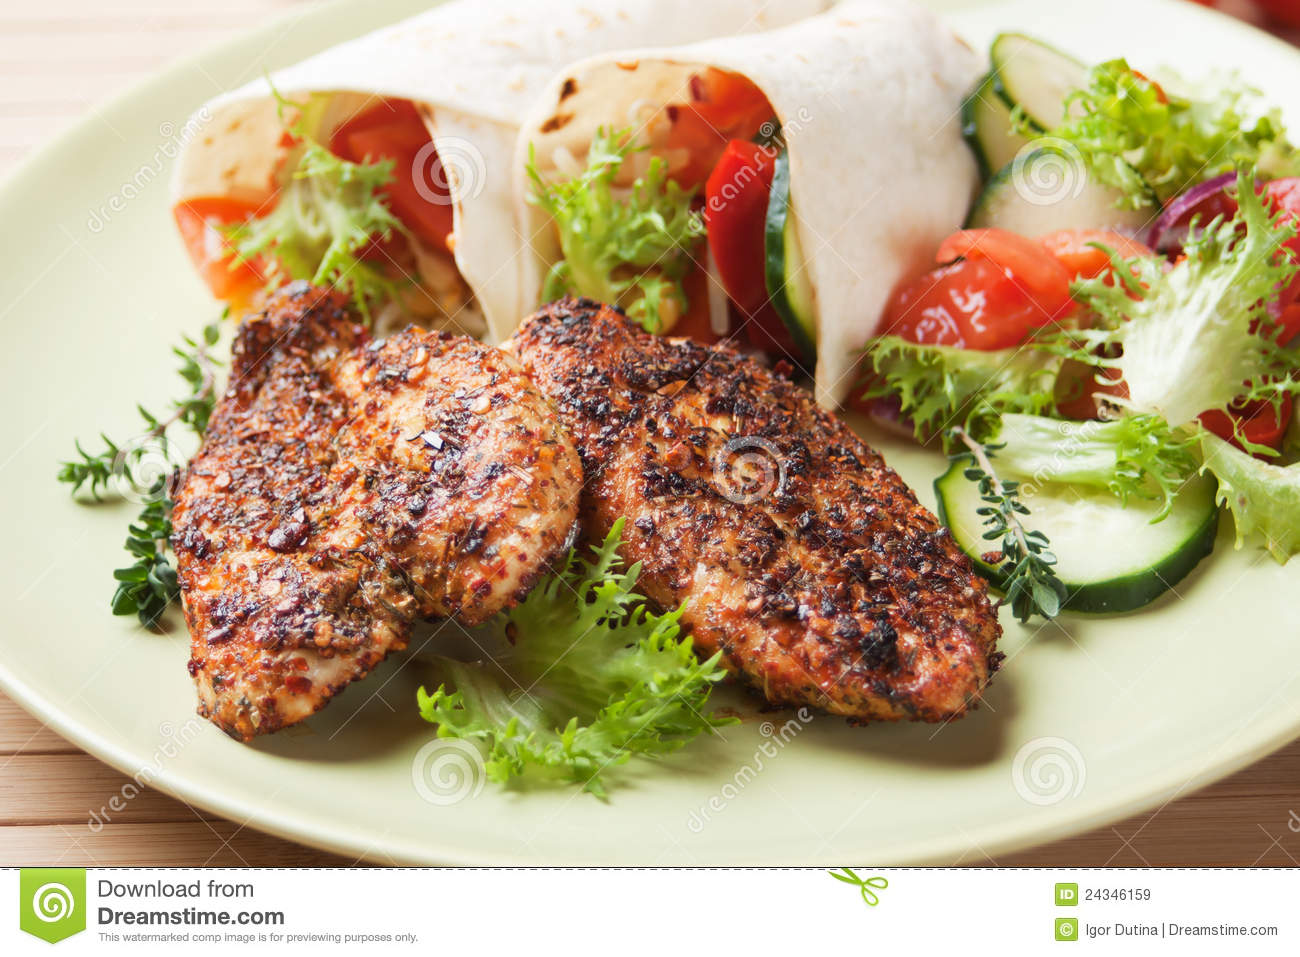 Spicy Chicken Breasts With Vegetable Salad Royalty Free Stock Images ...